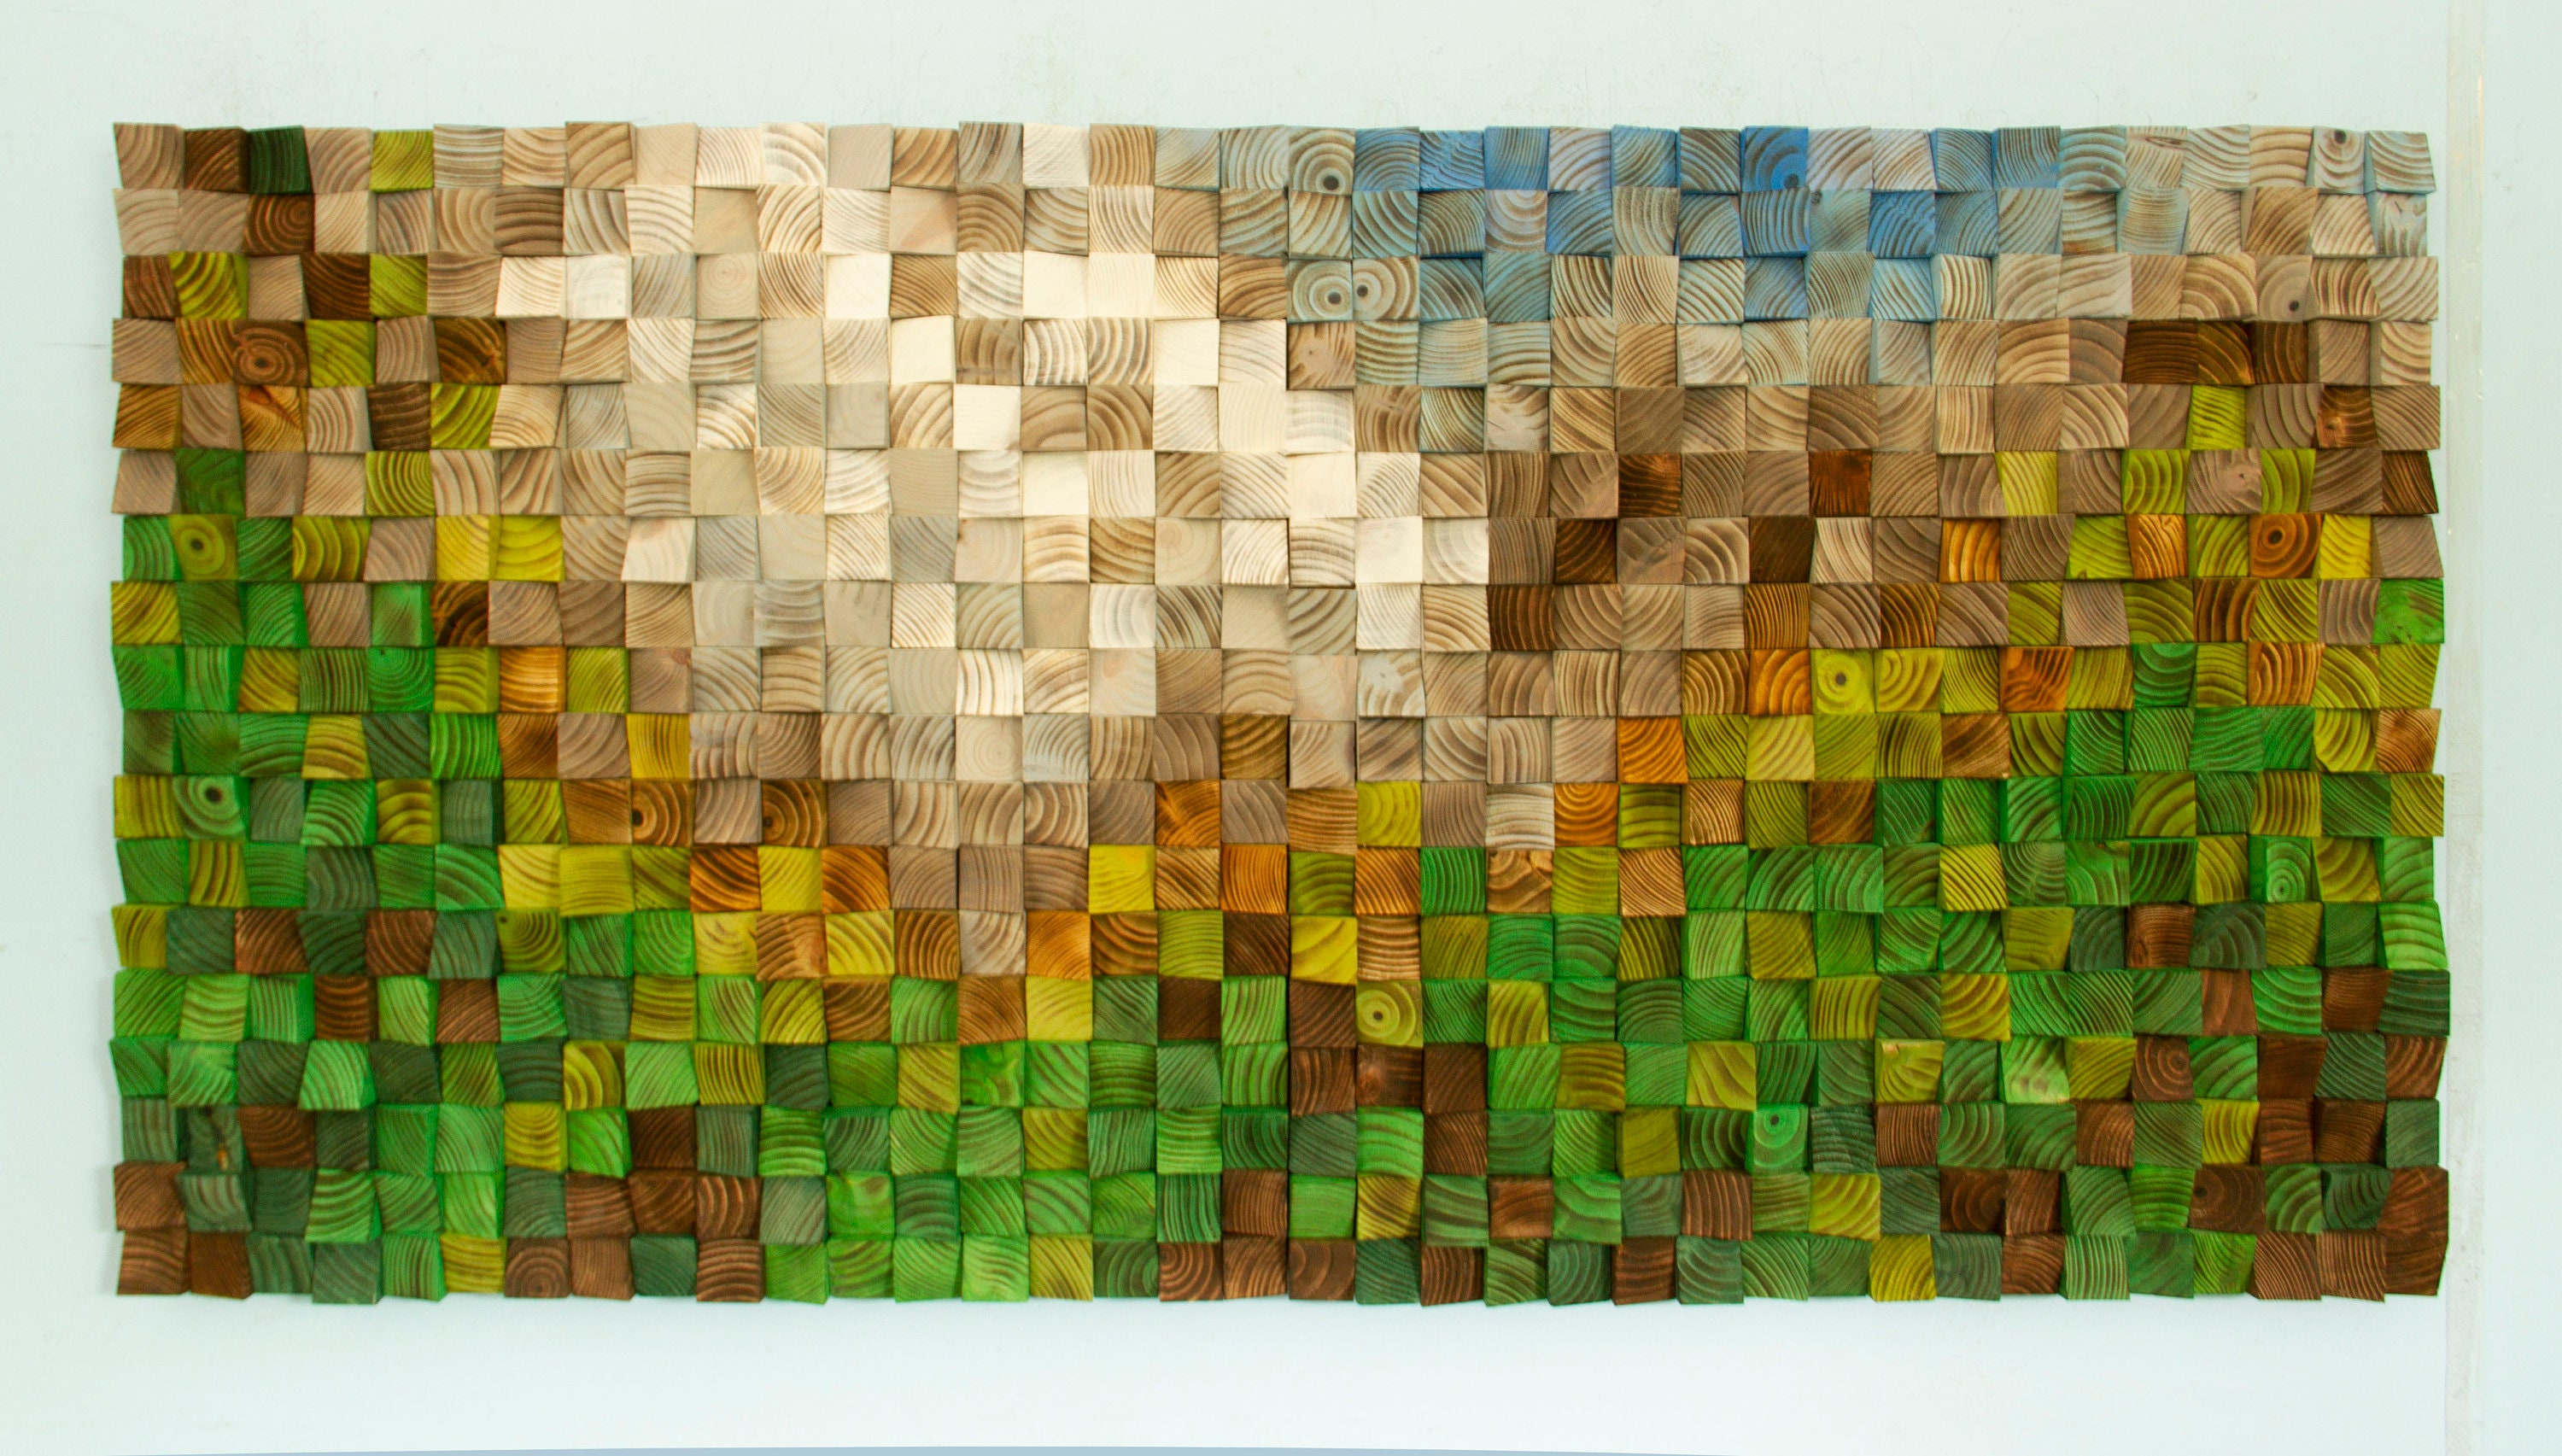 Wood Wall Art, mosaic wood art, landscape painting on wood